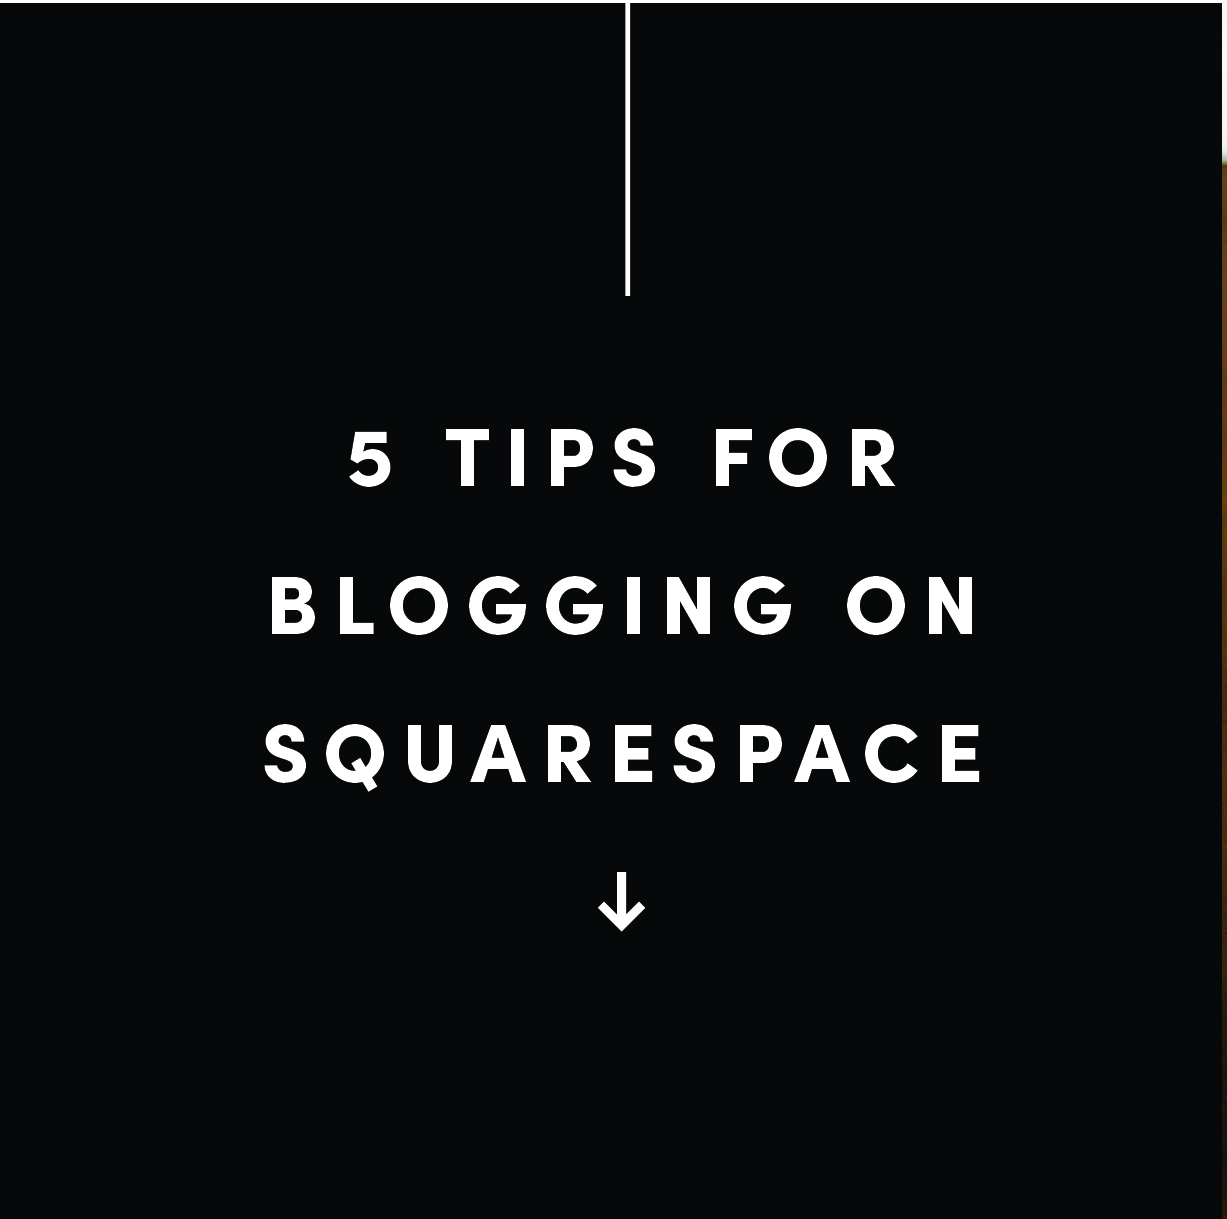 5 tips for blogging on squarespace - website templates for sale by bittersweet design boutique